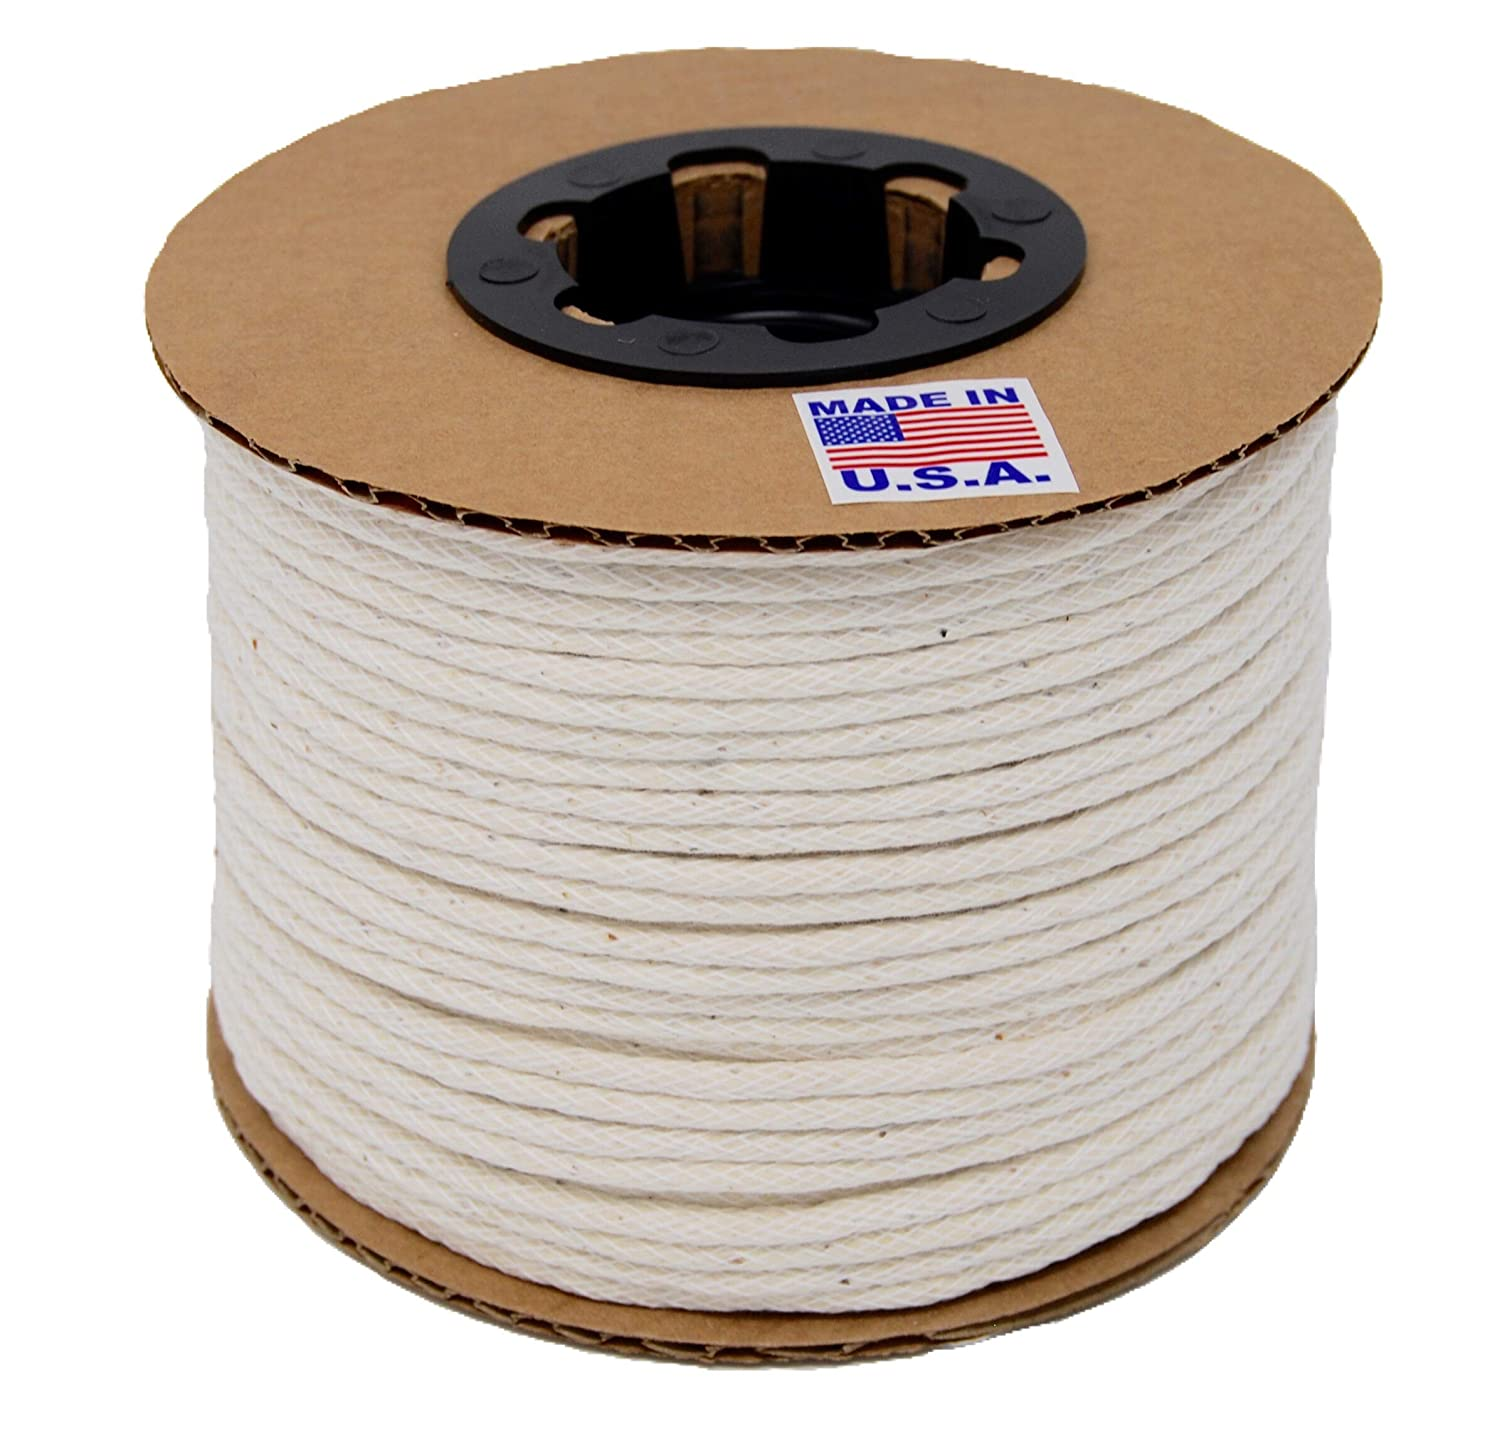 1//4 46 Yards//Spool Cotton Piping Welt Cord Made in USA #2